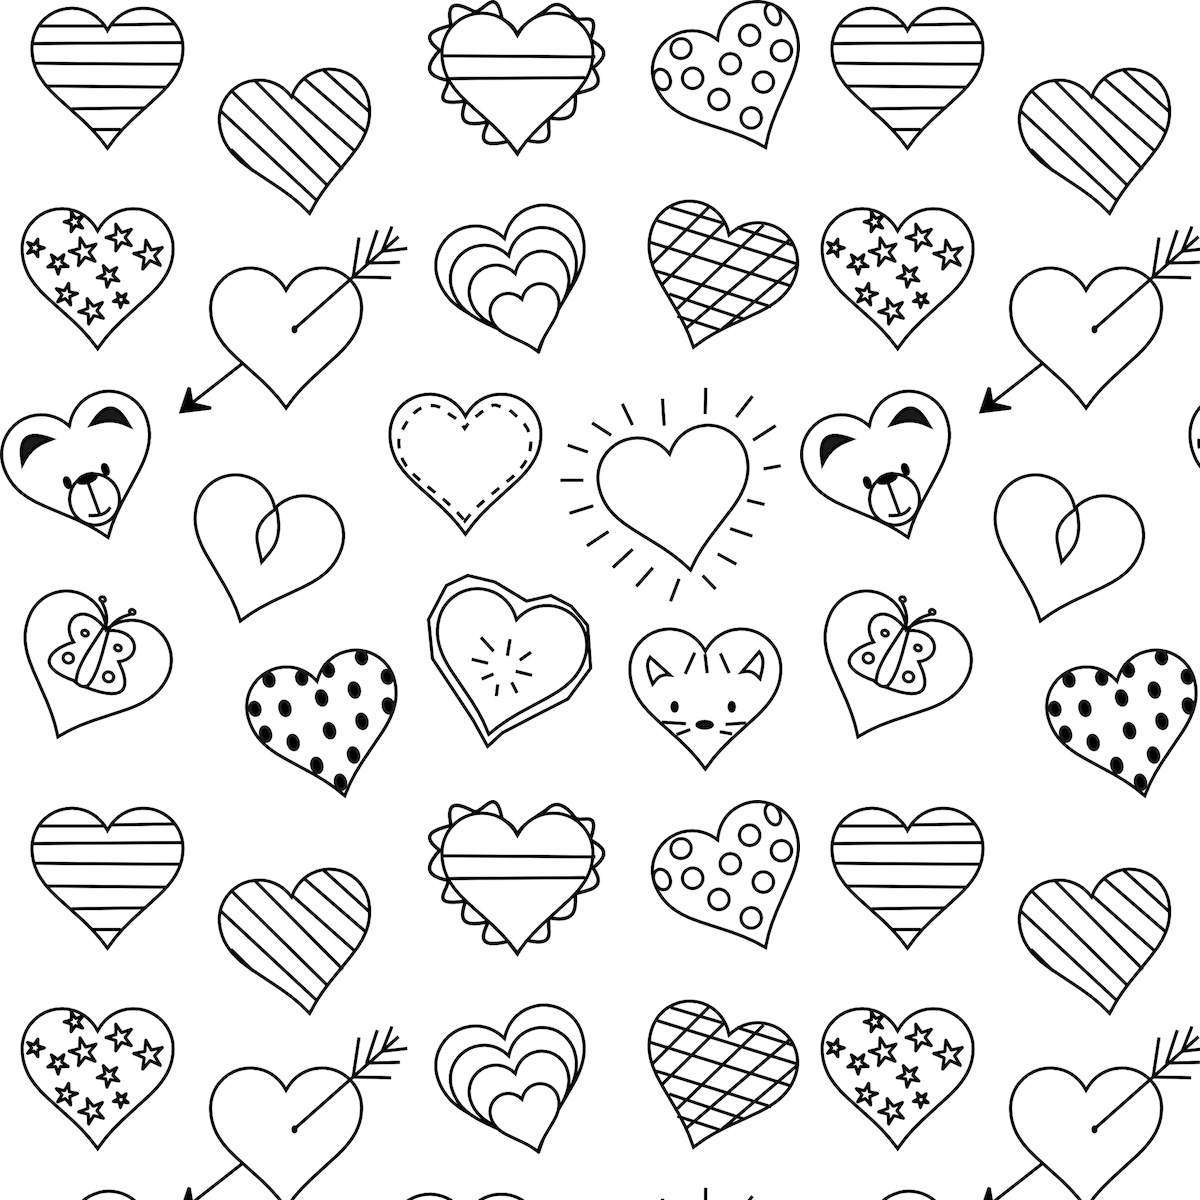 free heart coloring pages decorated heart coloring page free printable coloring pages heart free coloring pages